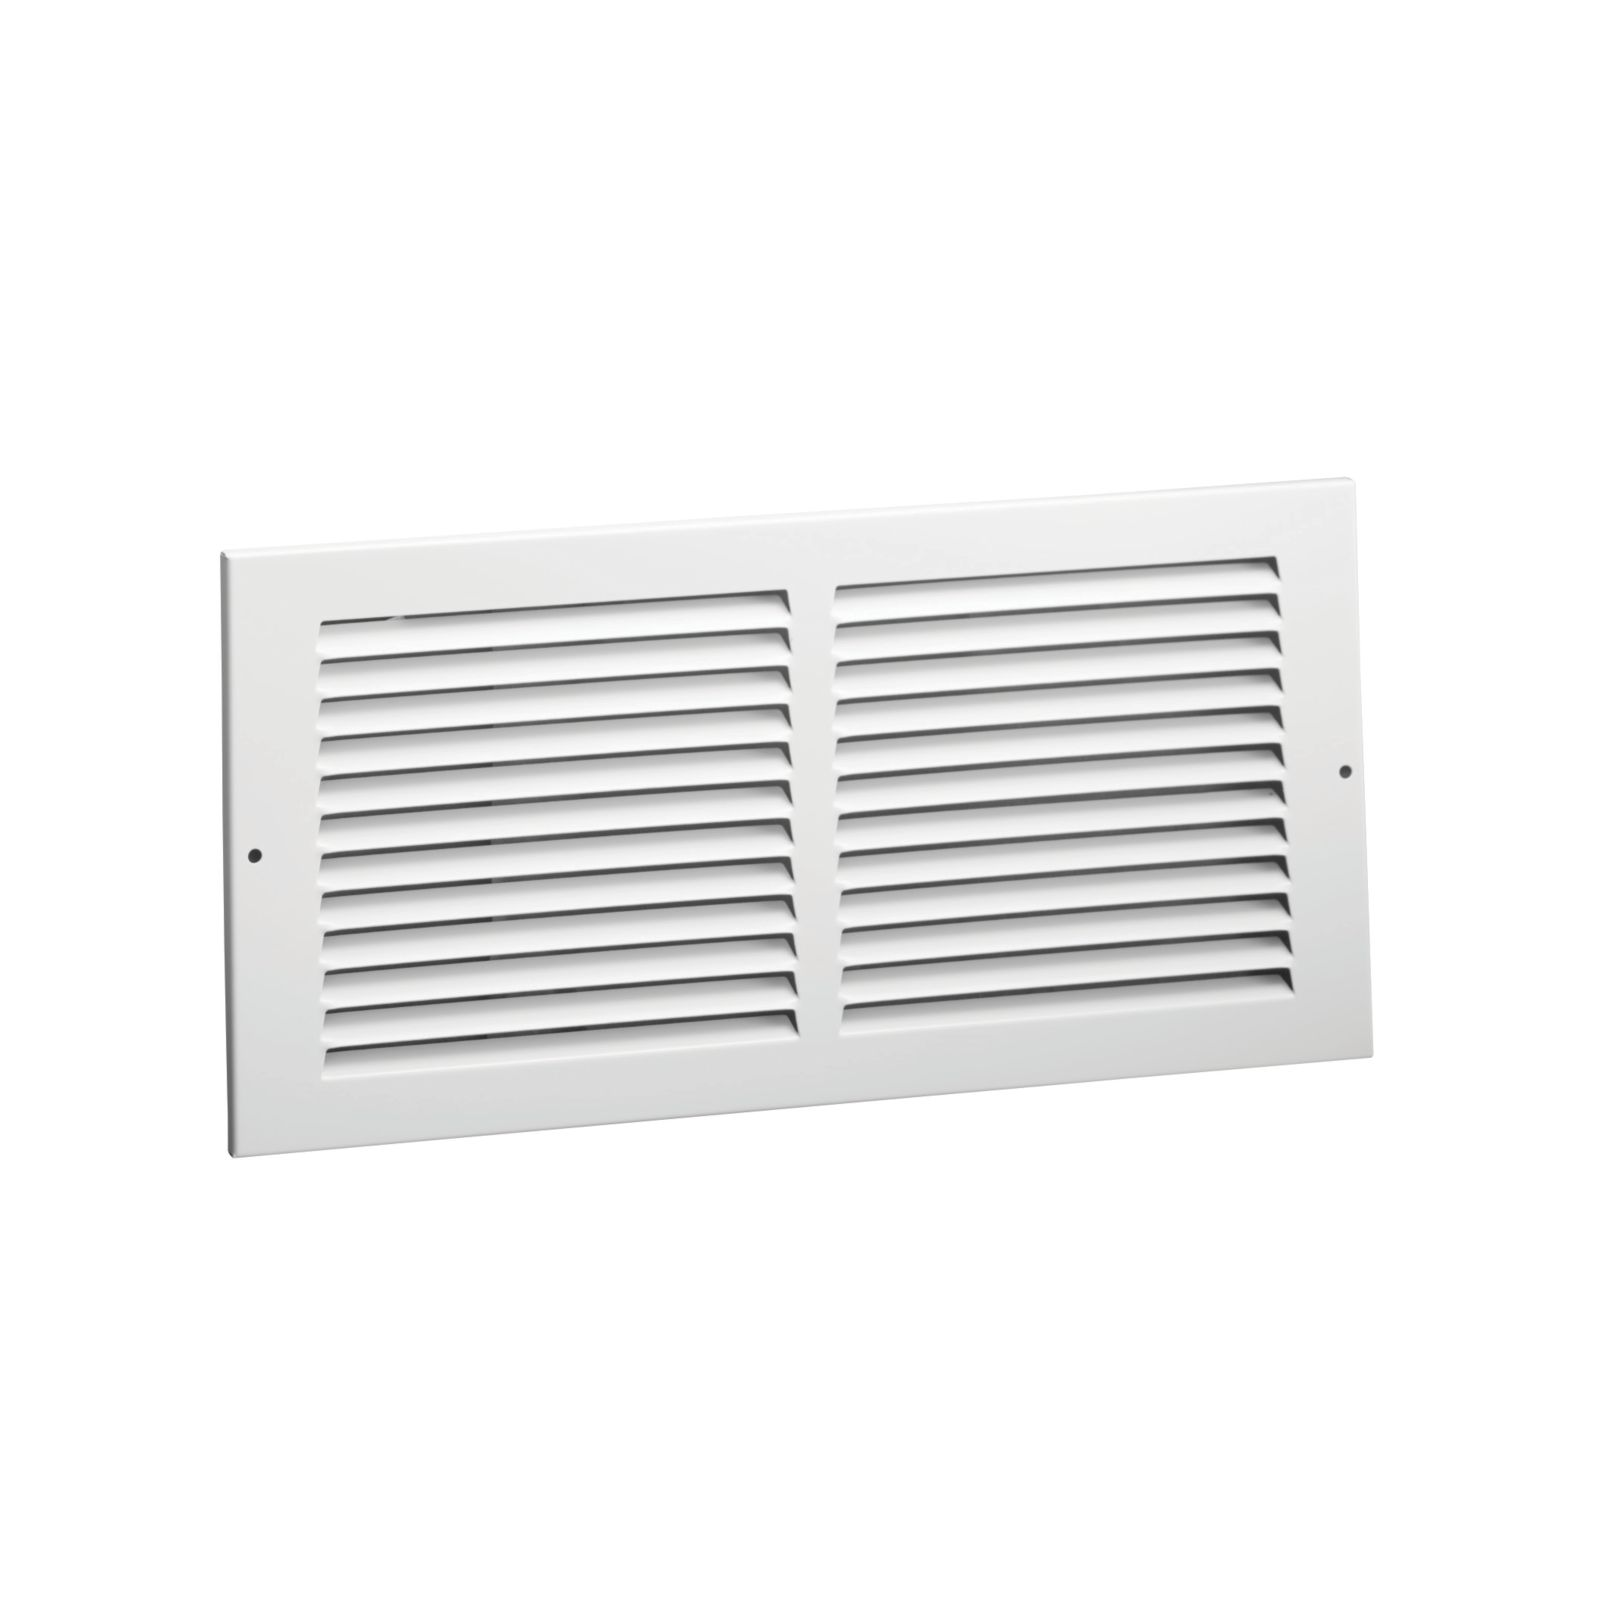 "Hart & Cooley 703978 - #672M Steel Return Air Grille, White Finish, 30"" X 6"""